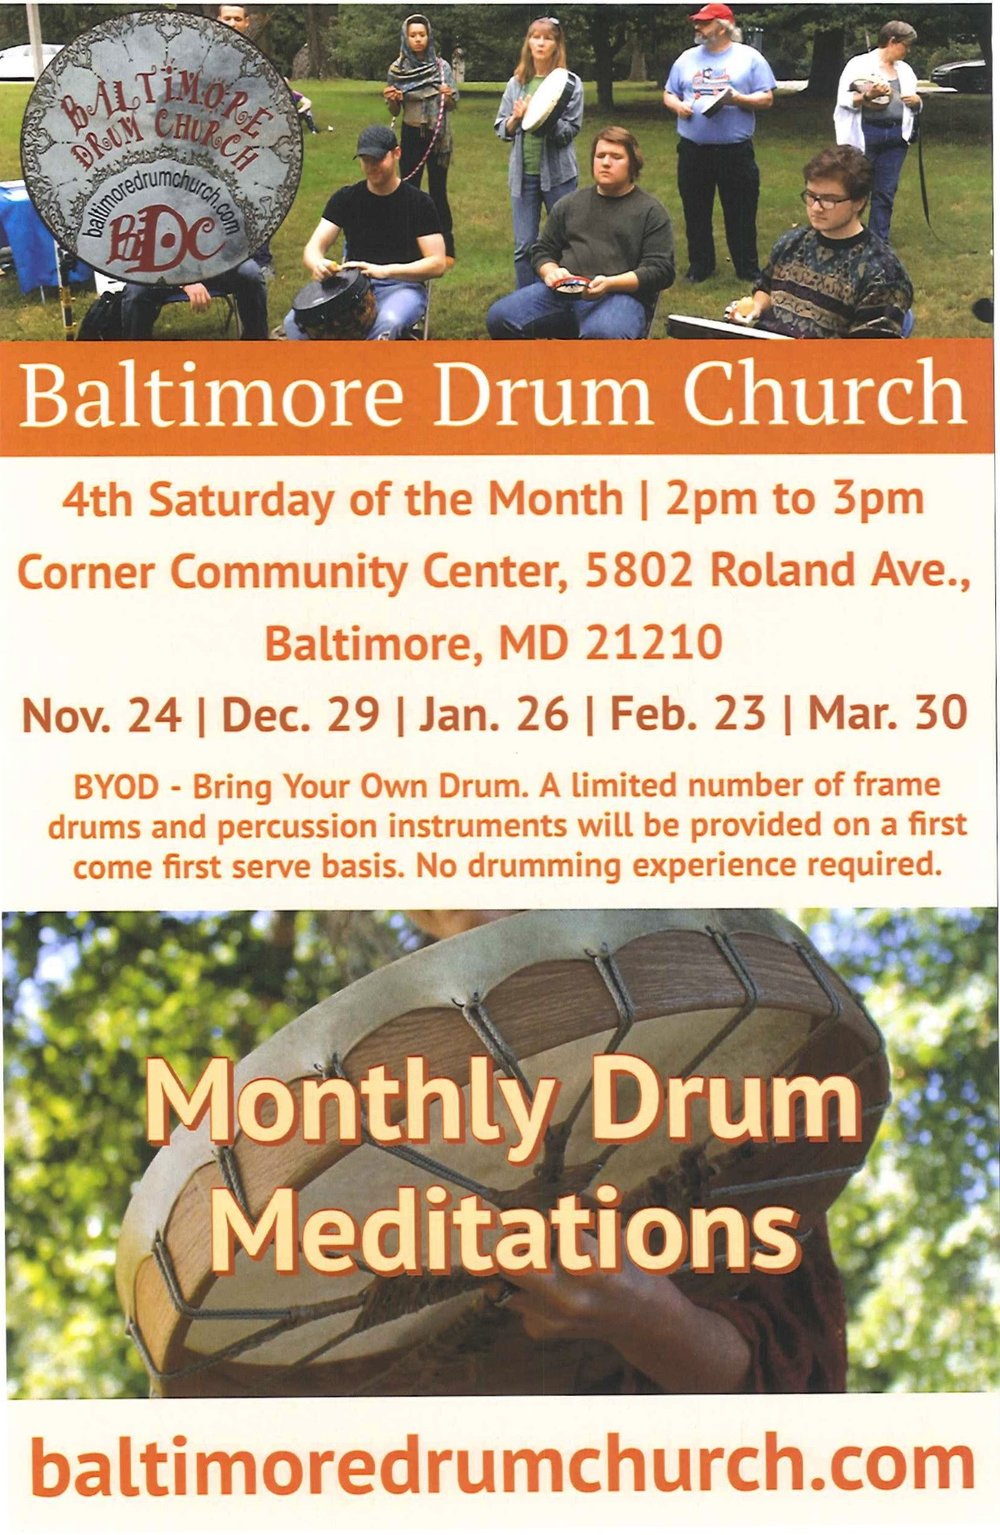 Drum Church Flyer.jpg